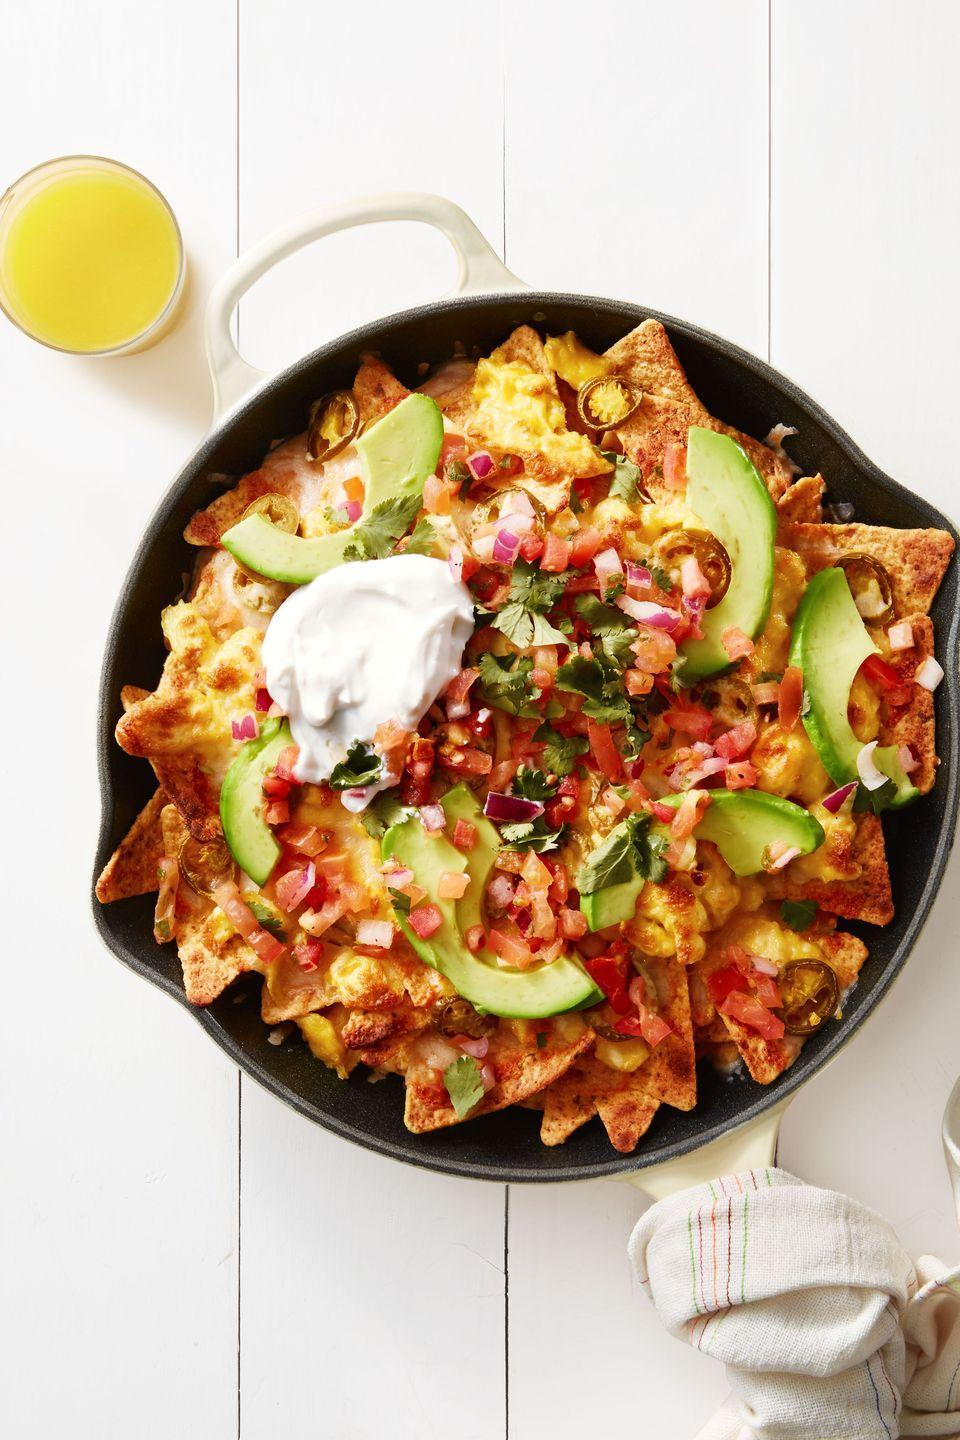 "<p>Is there any better way to start your morning than with <a href=""https://www.goodhousekeeping.com/food-recipes/a29960234/how-to-make-nachos-recipe/"" rel=""nofollow noopener"" target=""_blank"" data-ylk=""slk:nachos"" class=""link rapid-noclick-resp"">nachos</a>? We think not.</p><p><a href=""https://www.goodhousekeeping.com/food-recipes/a39354/mexican-breakfast-chilaquiles-recipe/"" rel=""nofollow noopener"" target=""_blank"" data-ylk=""slk:Get the recipe for Mexican Breakfast Chilaquiles »"" class=""link rapid-noclick-resp""><em>Get the recipe for Mexican Breakfast Chilaquiles »</em></a></p>"